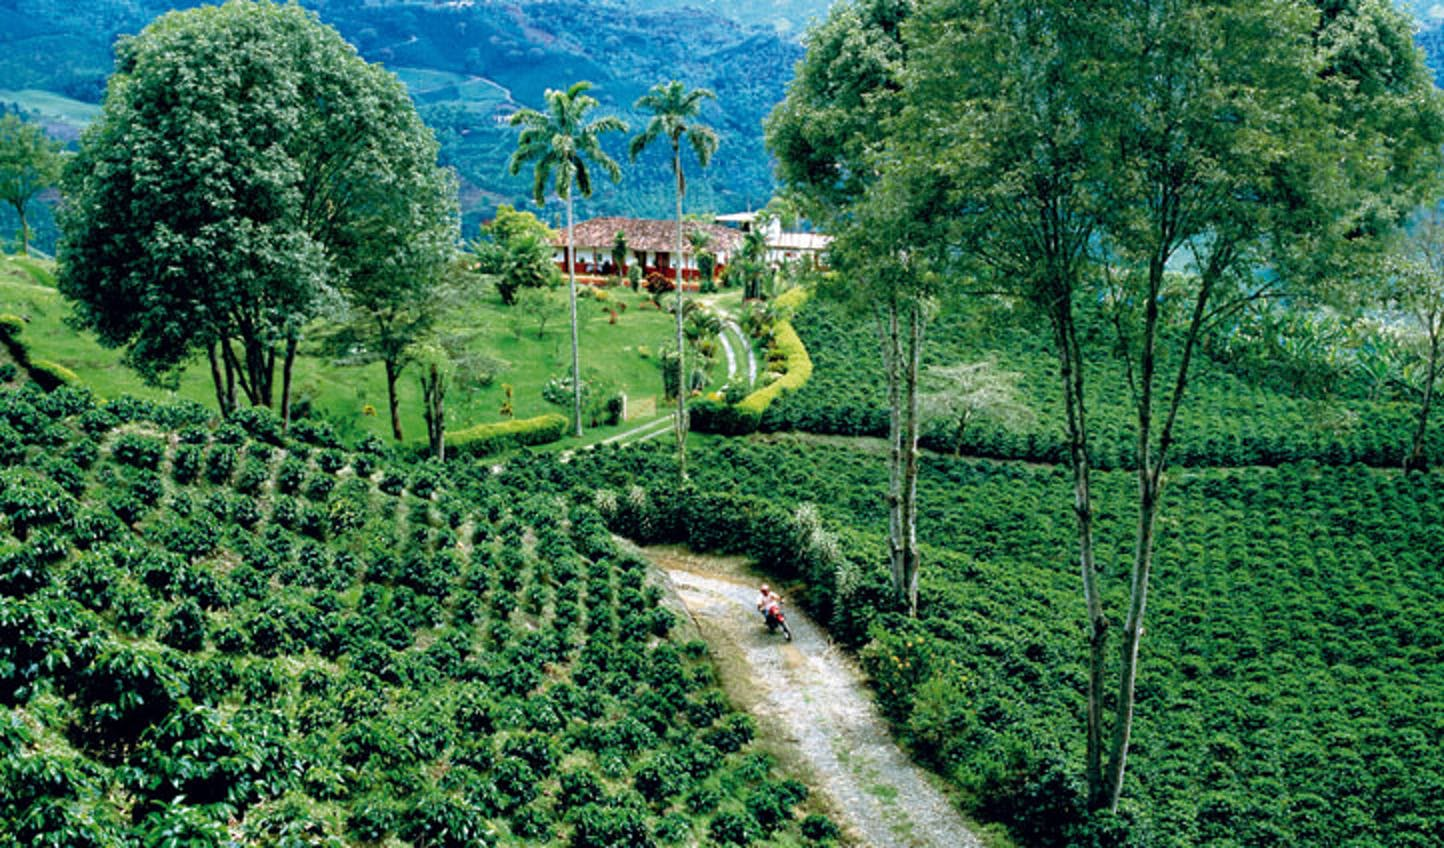 A local coffee plantation in Colombia